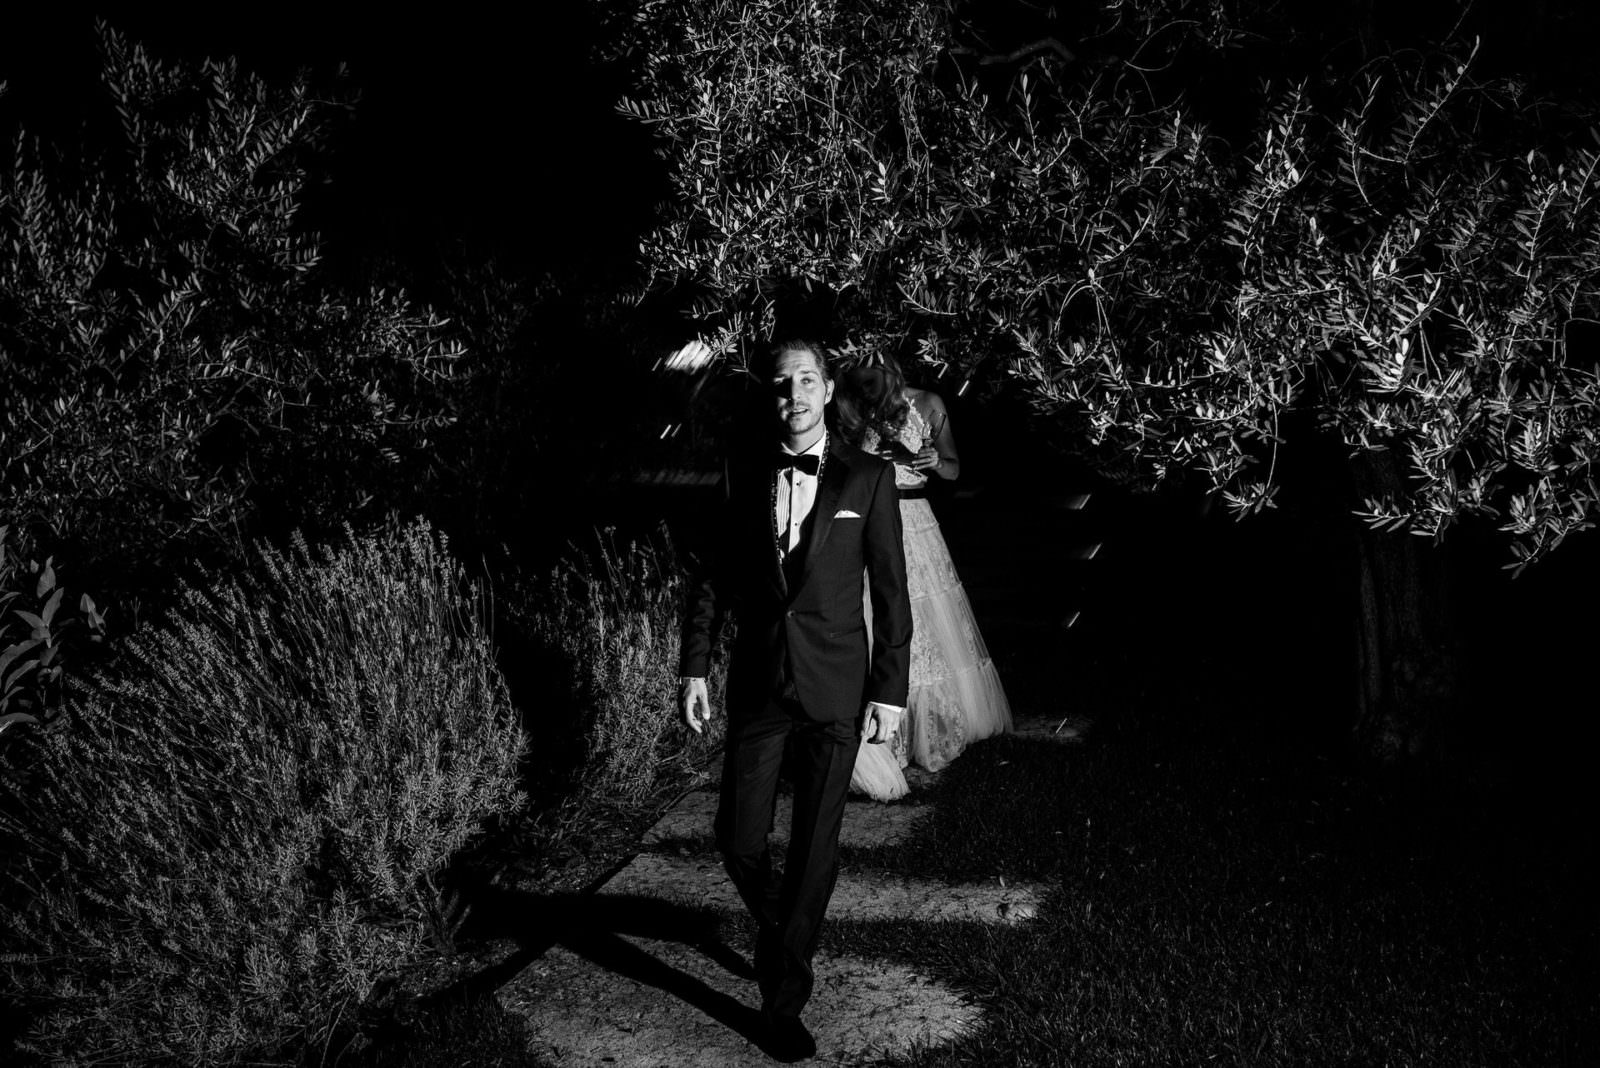 julia_manuel_136_italy_wedding